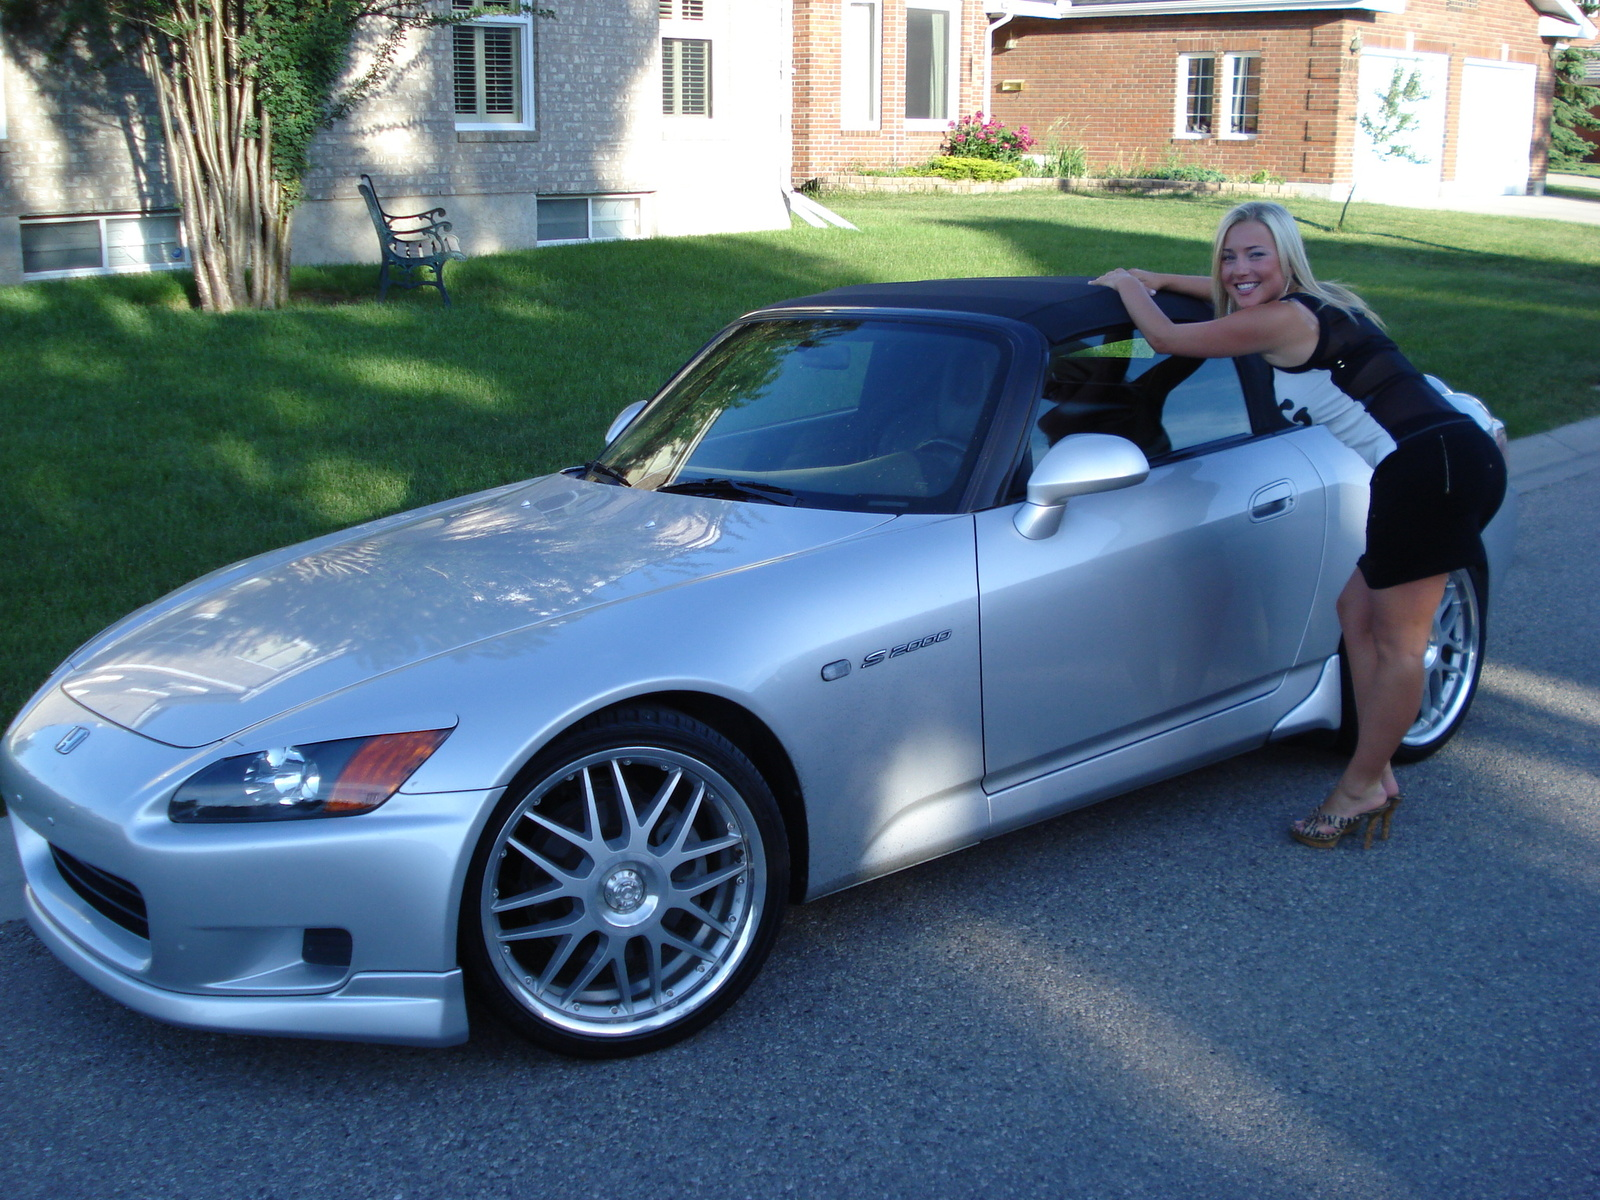 2002 Honda S2000 Information And Photos Momentcar